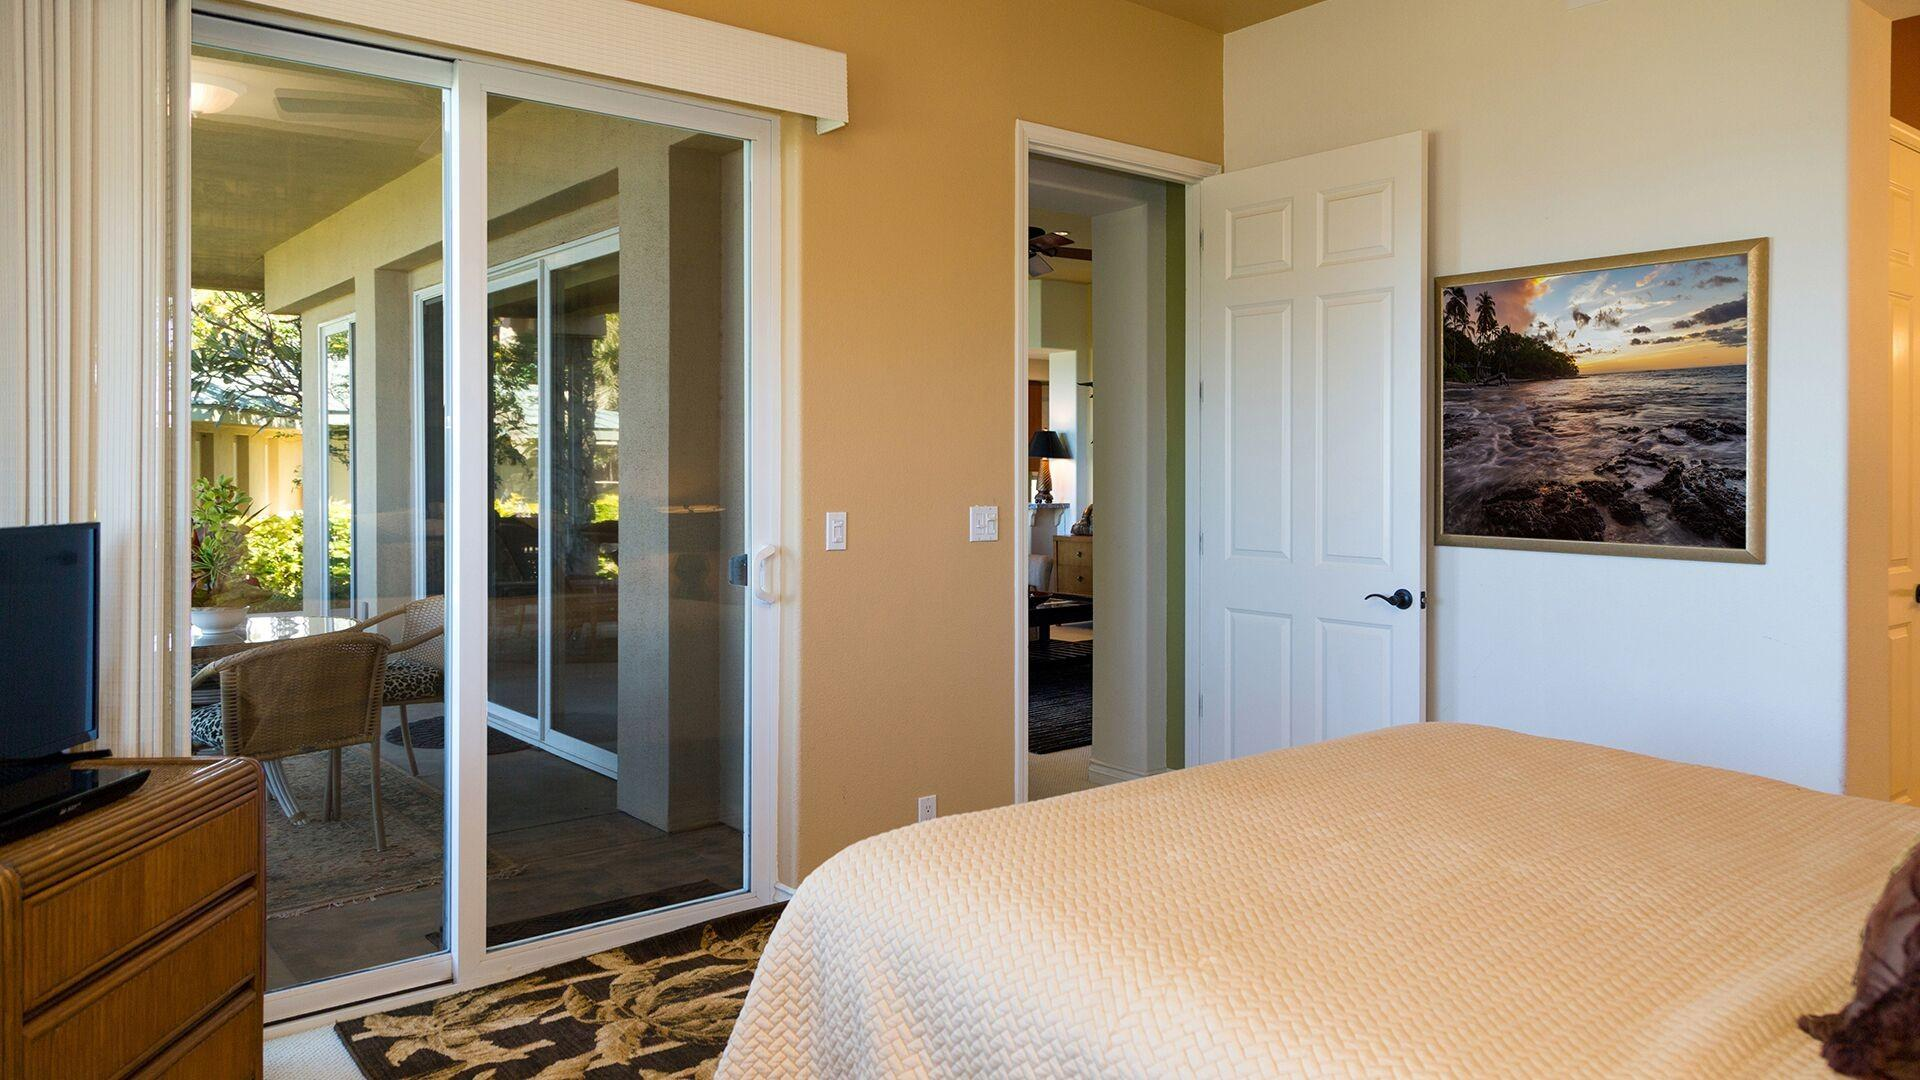 The Master Bedroom has it's own private entrance to the lanai.